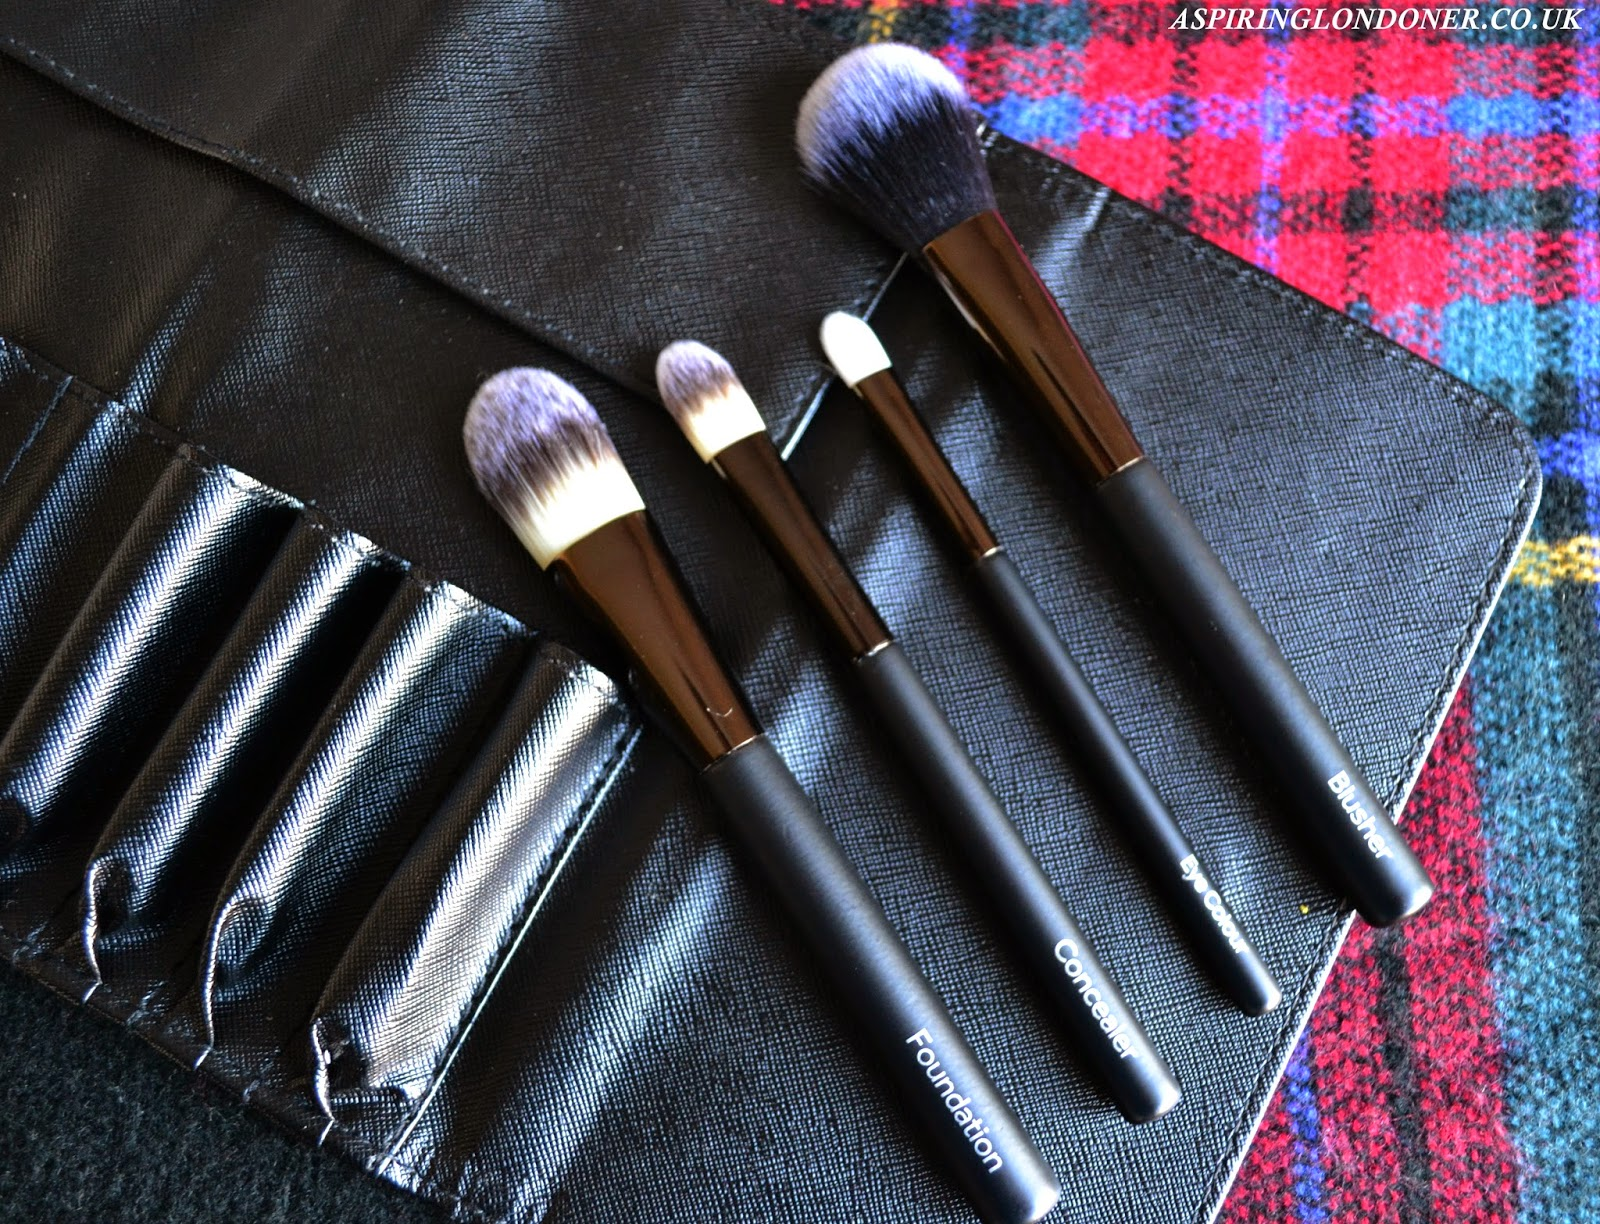 No7 Core Collection Brush Set Review - Aspiring Londoner